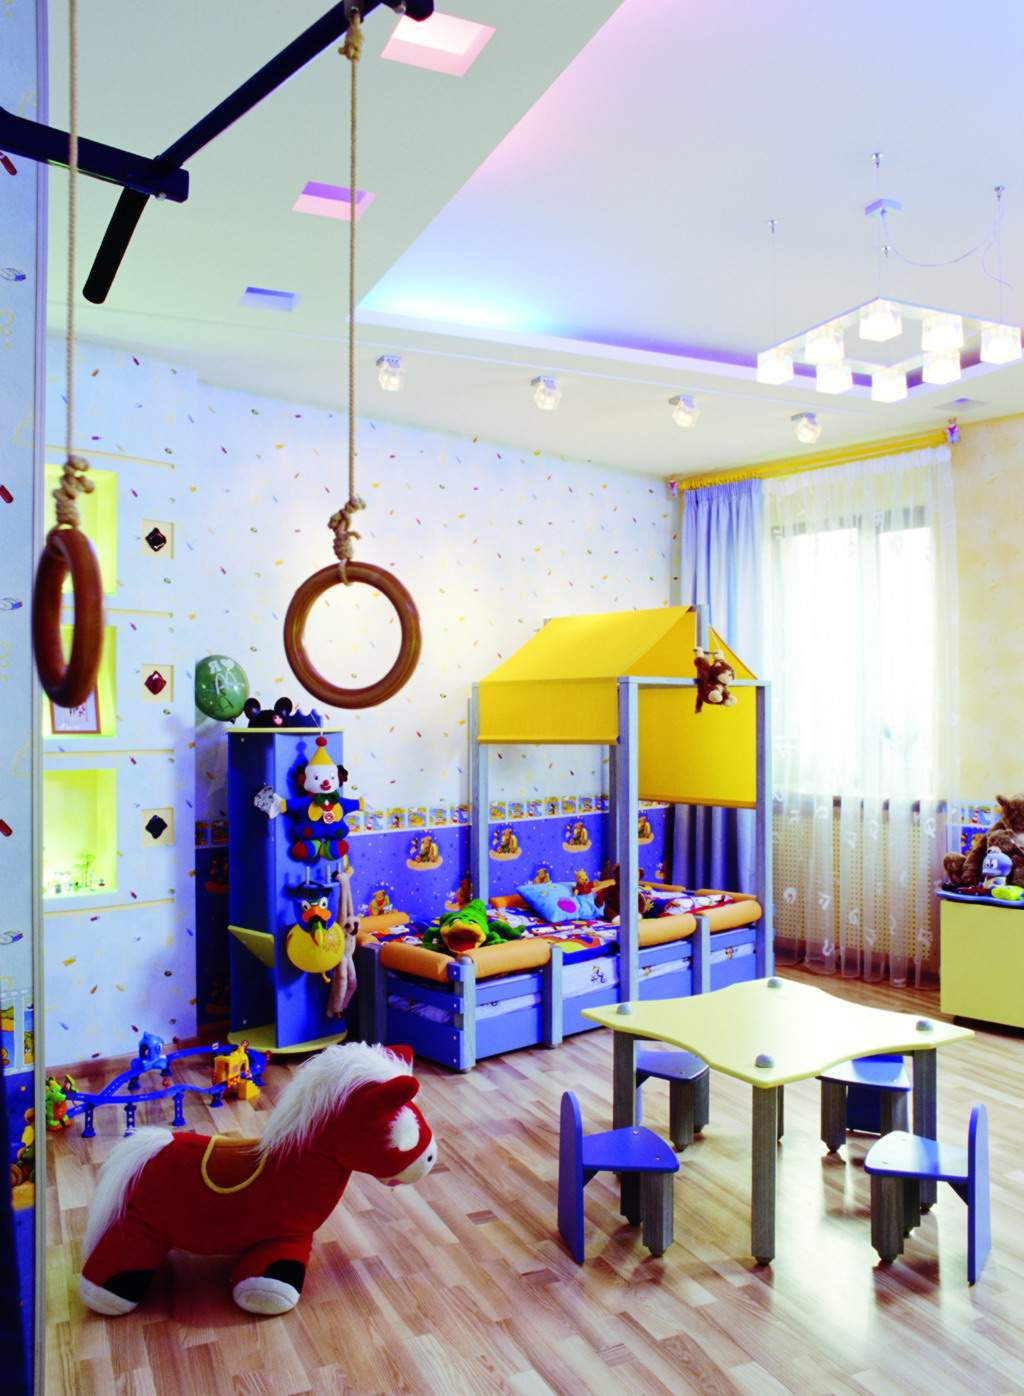 15 creative kids bedroom decorating ideas for Creative room decor